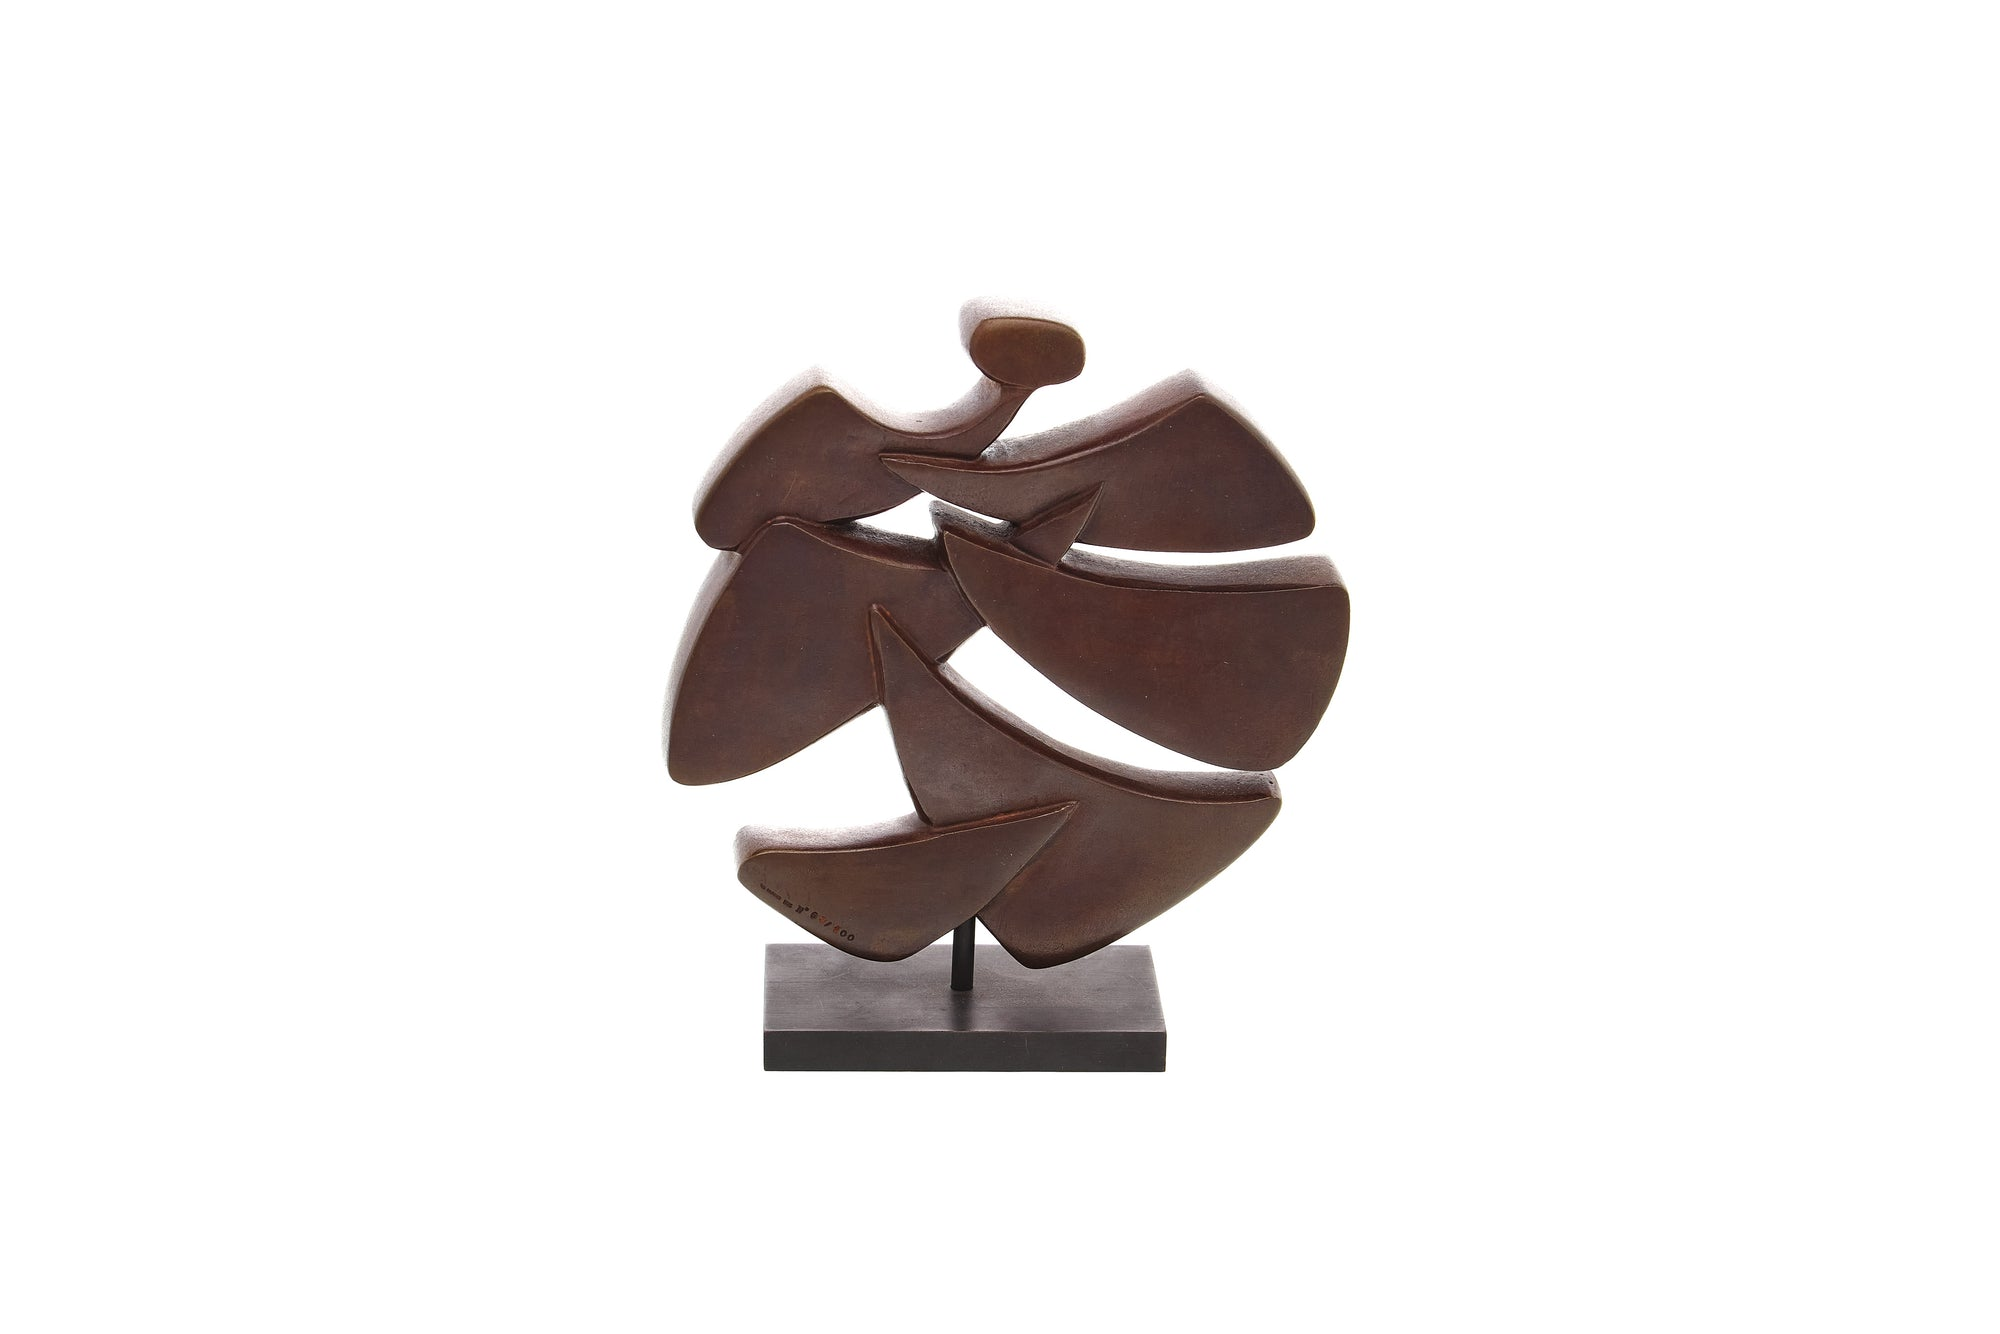 French Bronze Modernist Sculpture